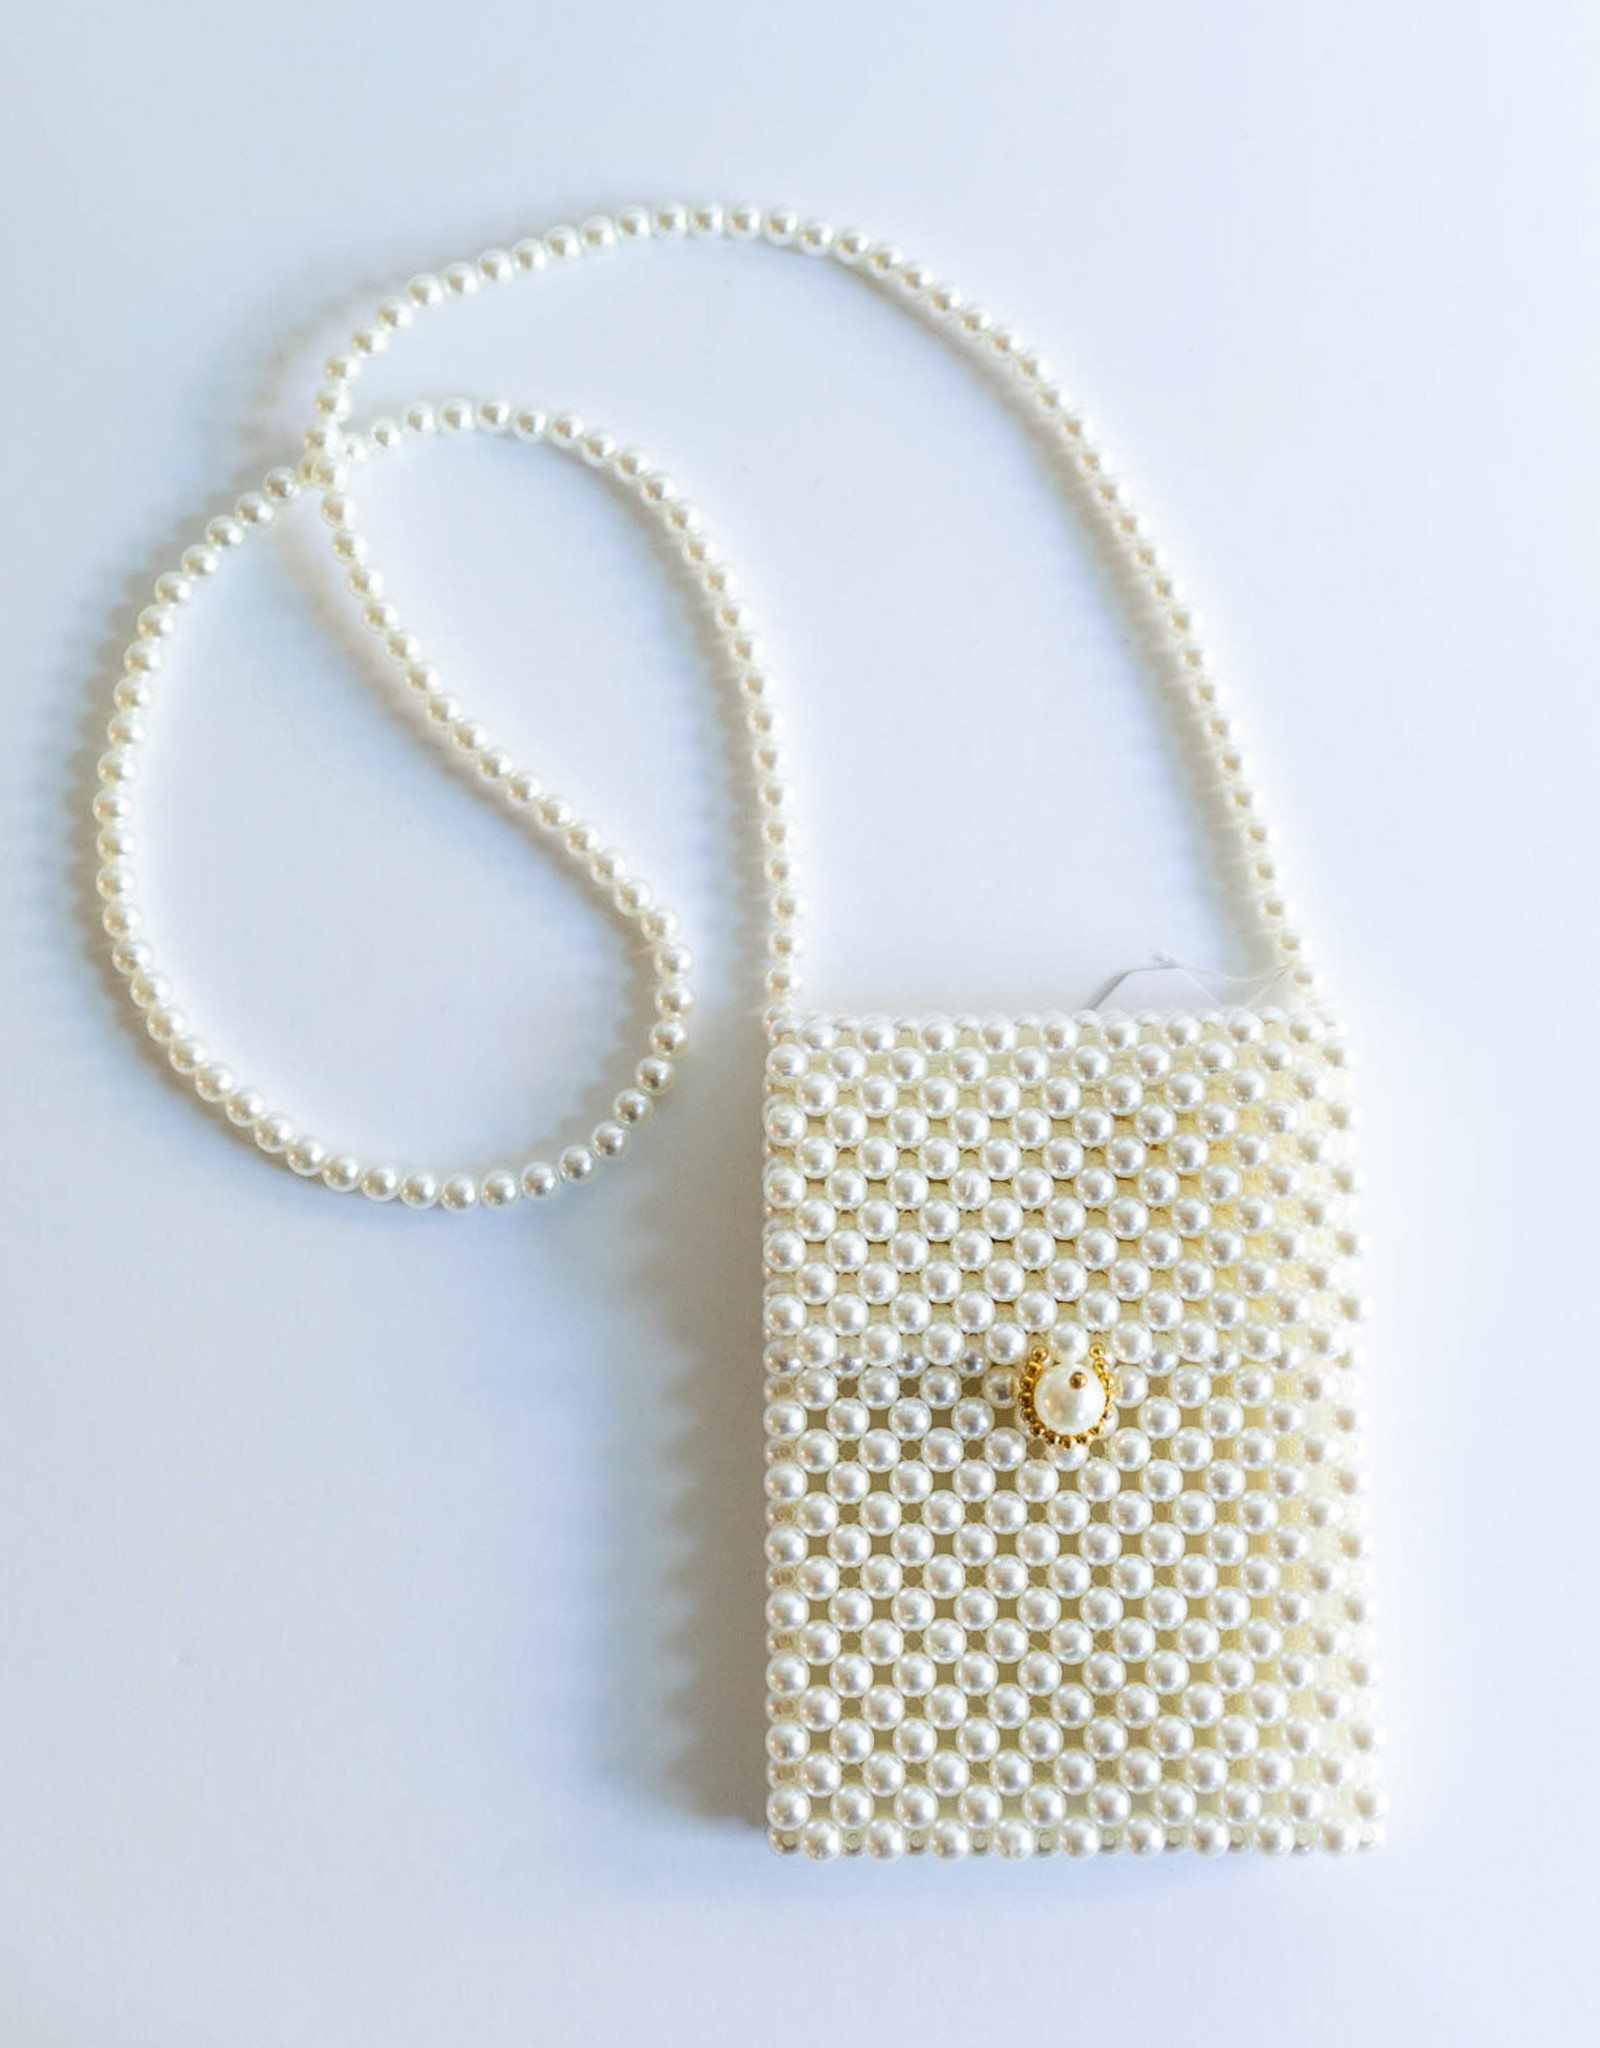 Melie Bianco Pearl Beaded Party Crossbody